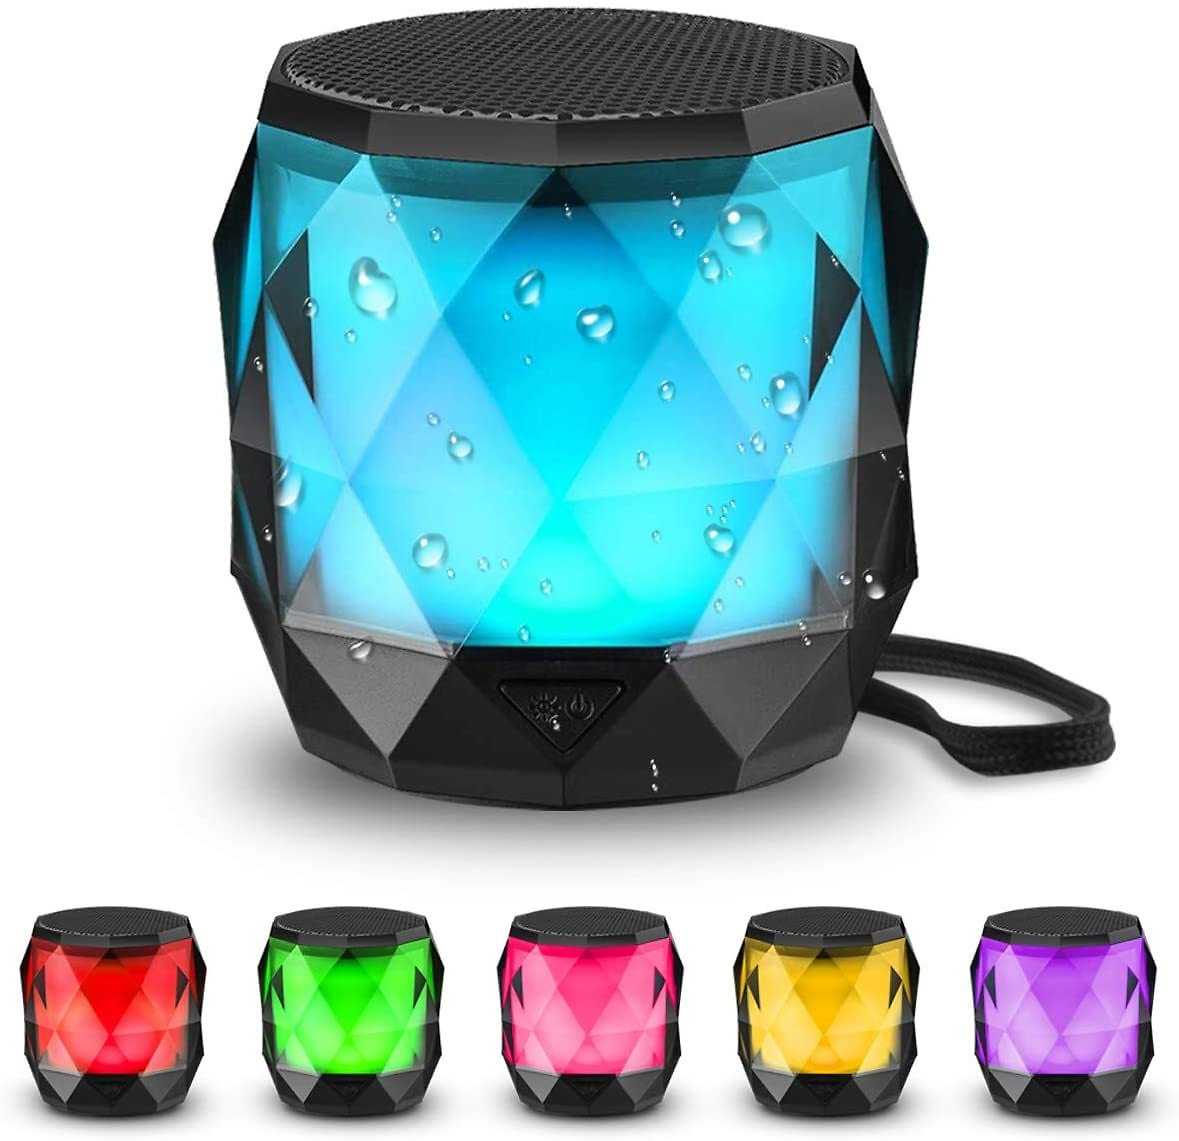 LFS Portable Bluetooth Speaker with Lights, Night Light LED Wireless Speaker,Magnetic Waterproof Speaker, 7 Color LED Auto-Chang